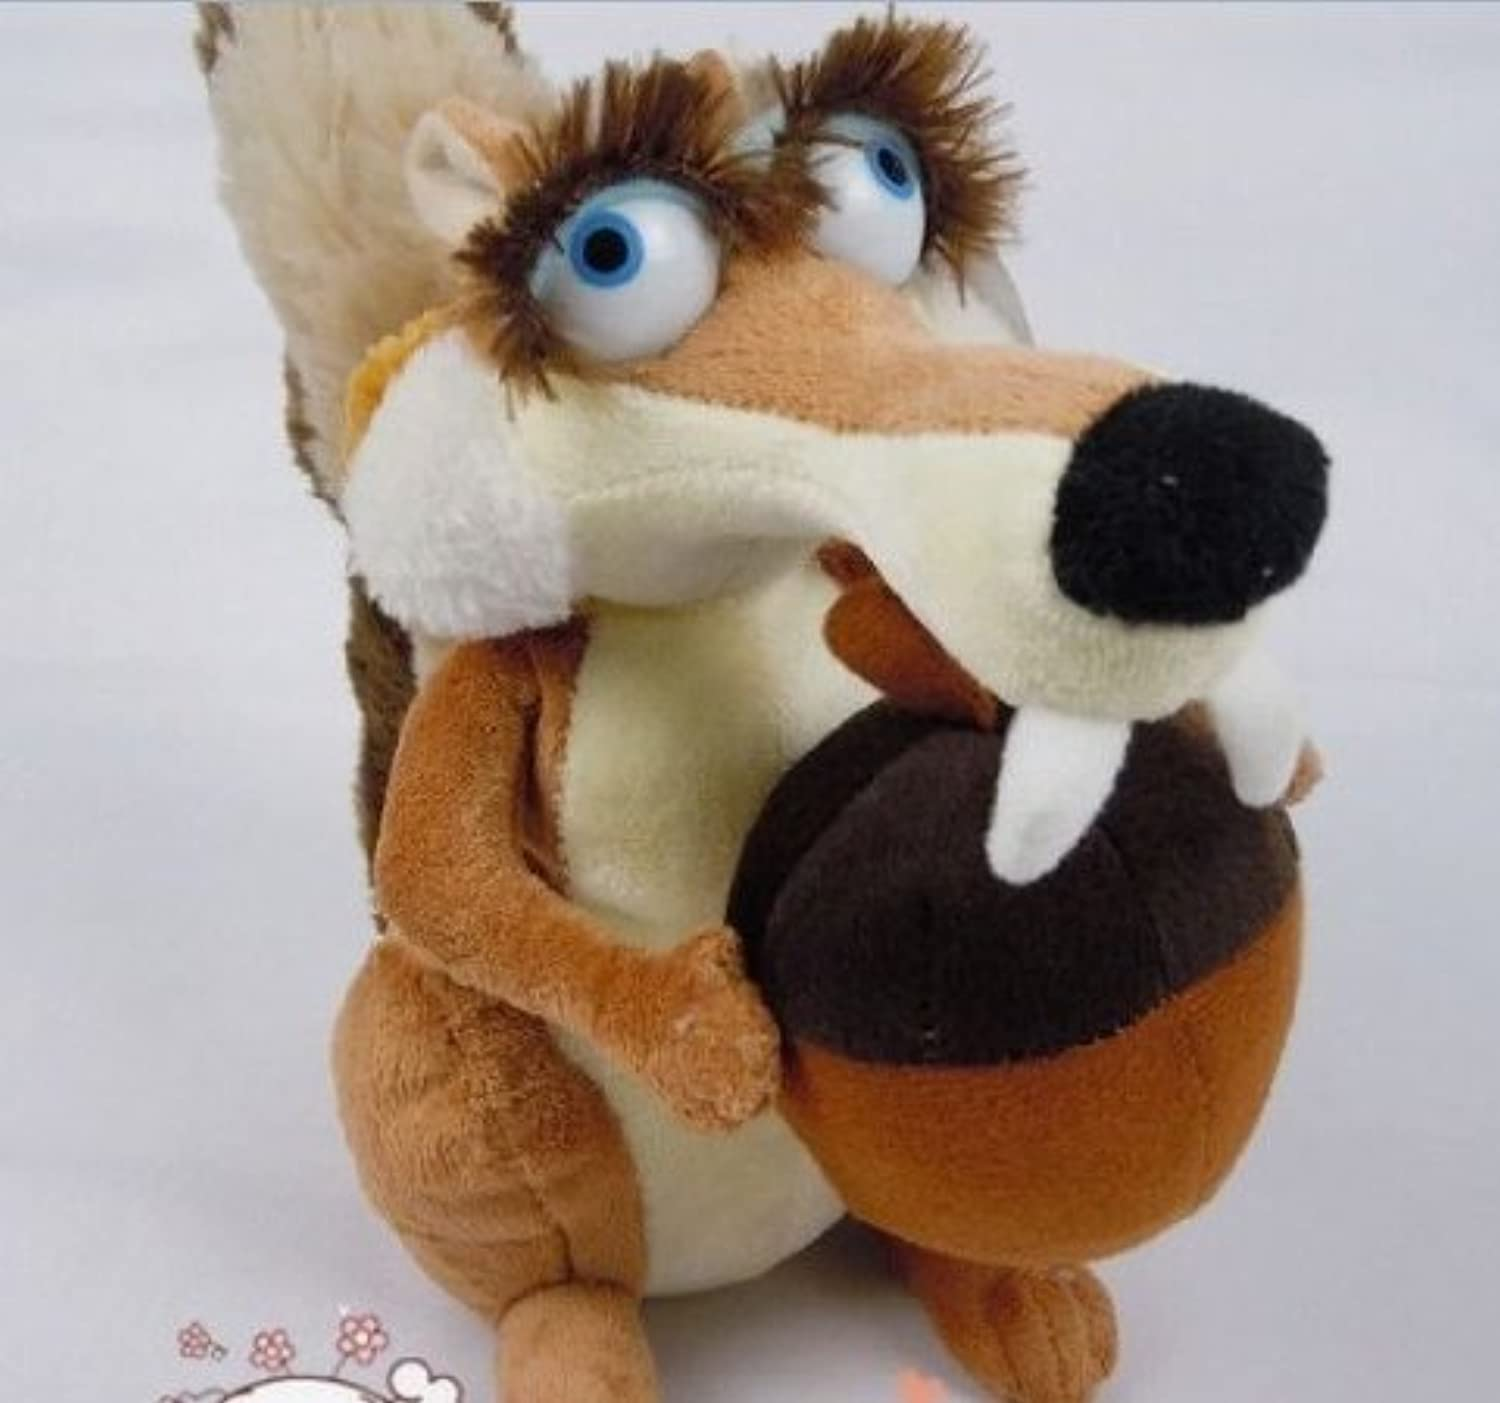 toma Ice Age squirrels scratte Plush Doll Juguete 10 KTWJ206 by by by Natorytian  a precios asequibles